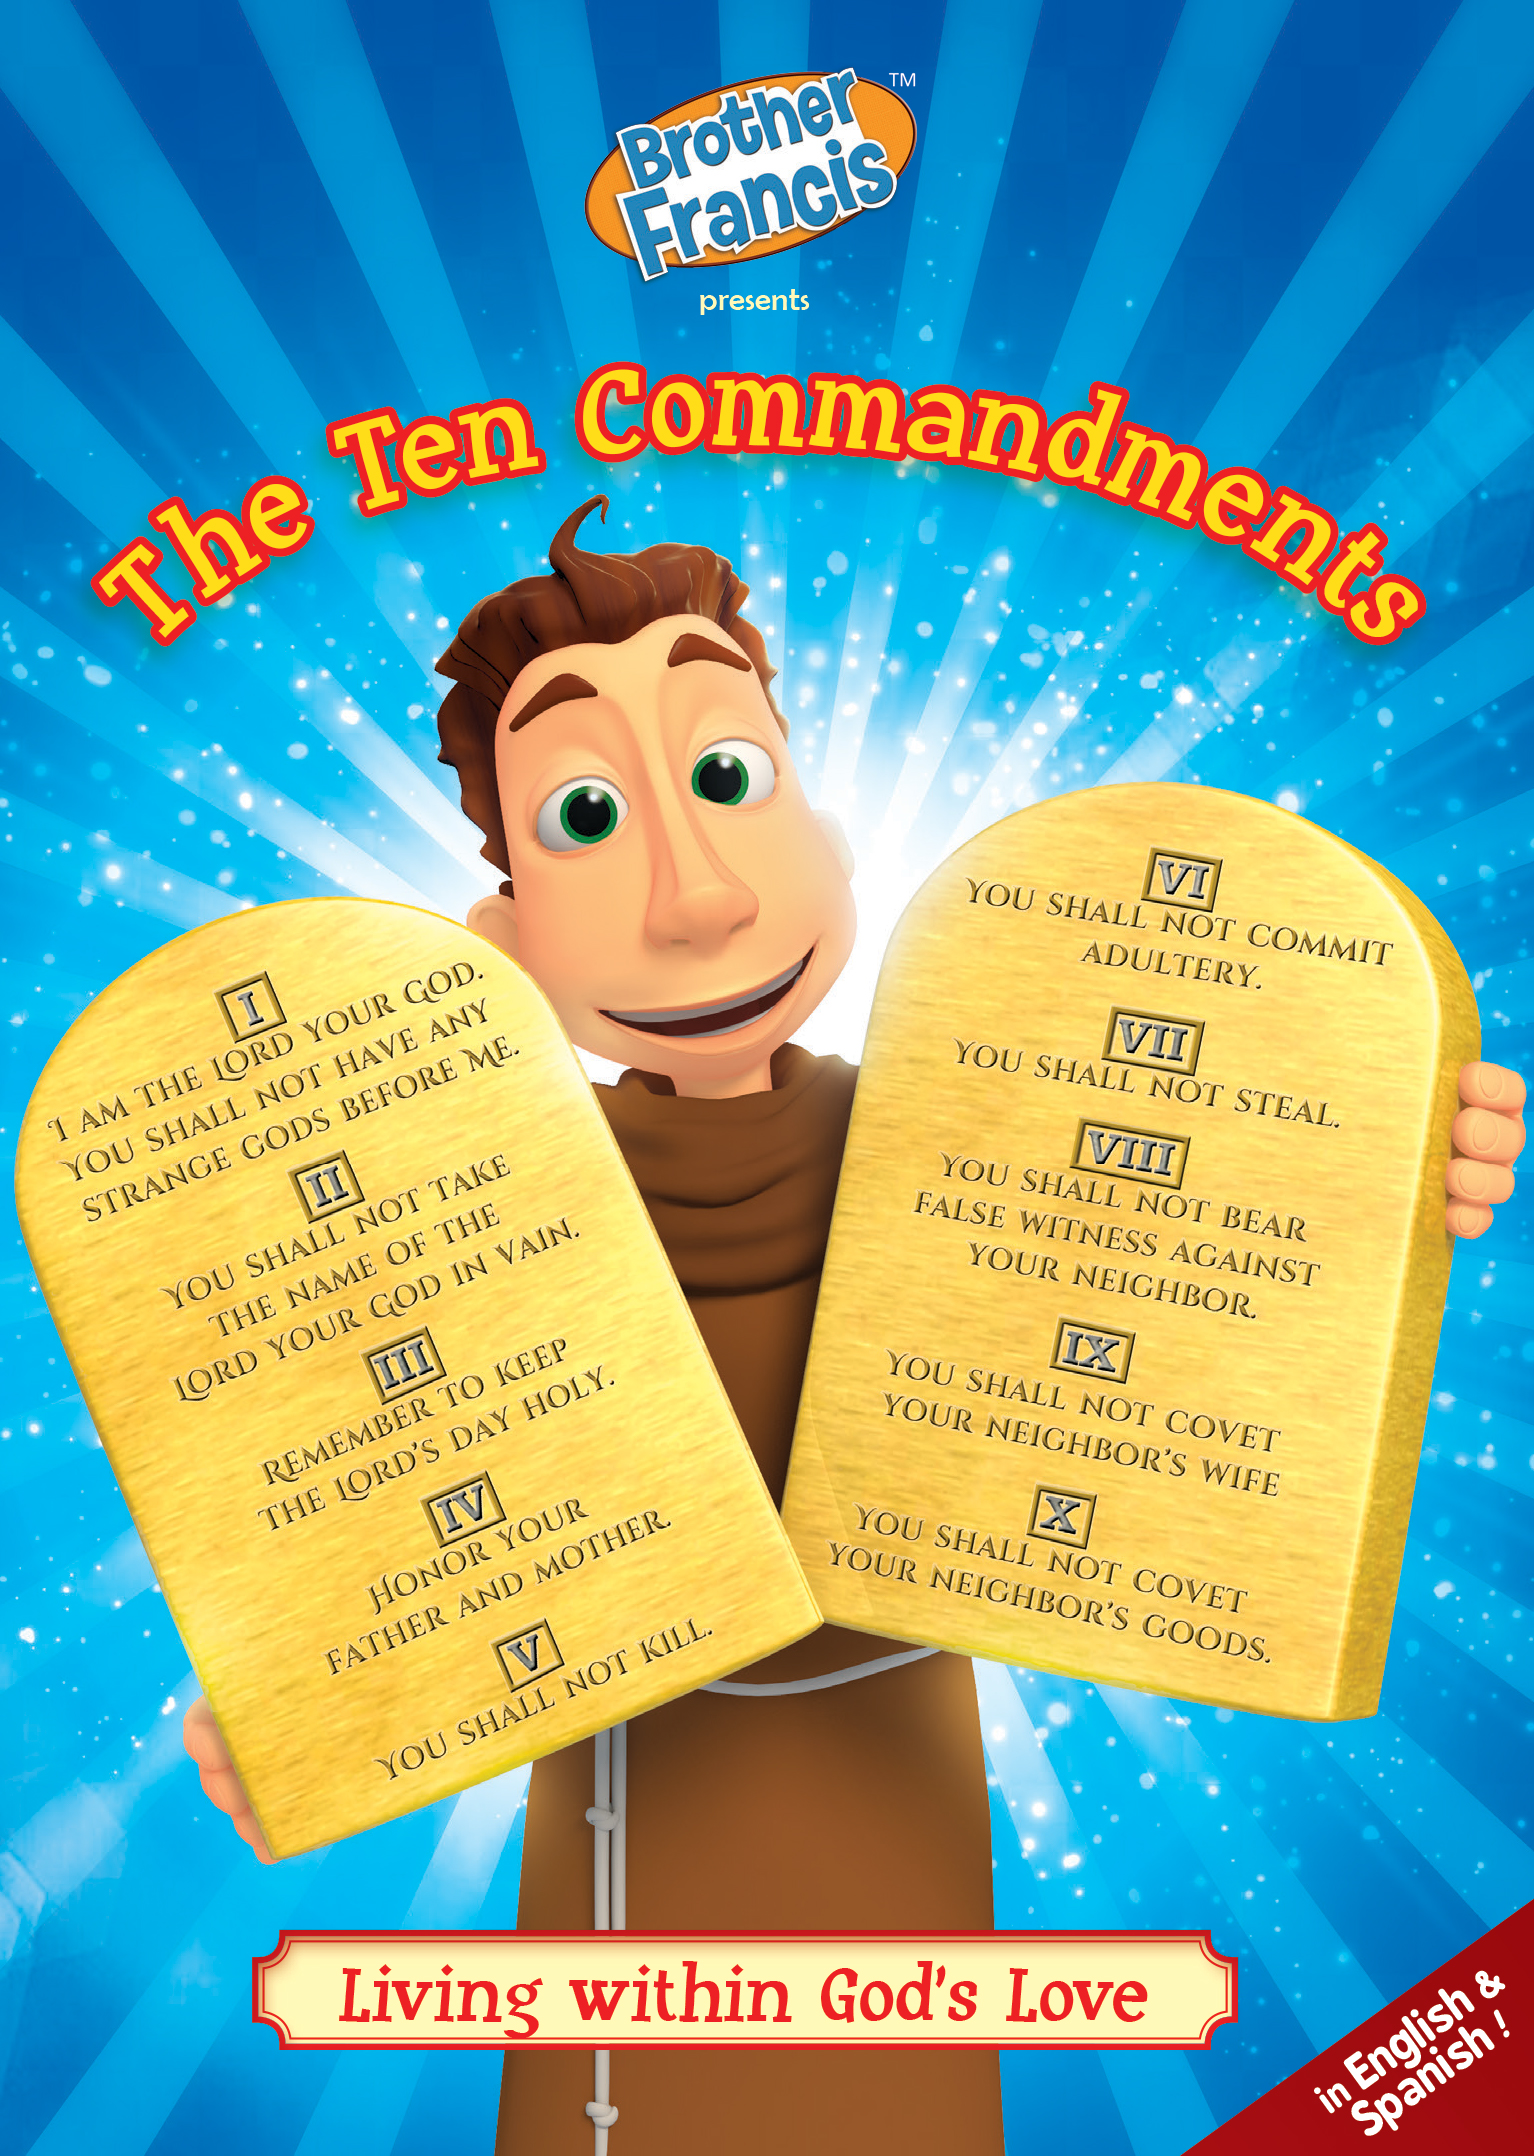 Brother Francis episode 16: The Ten Commandments